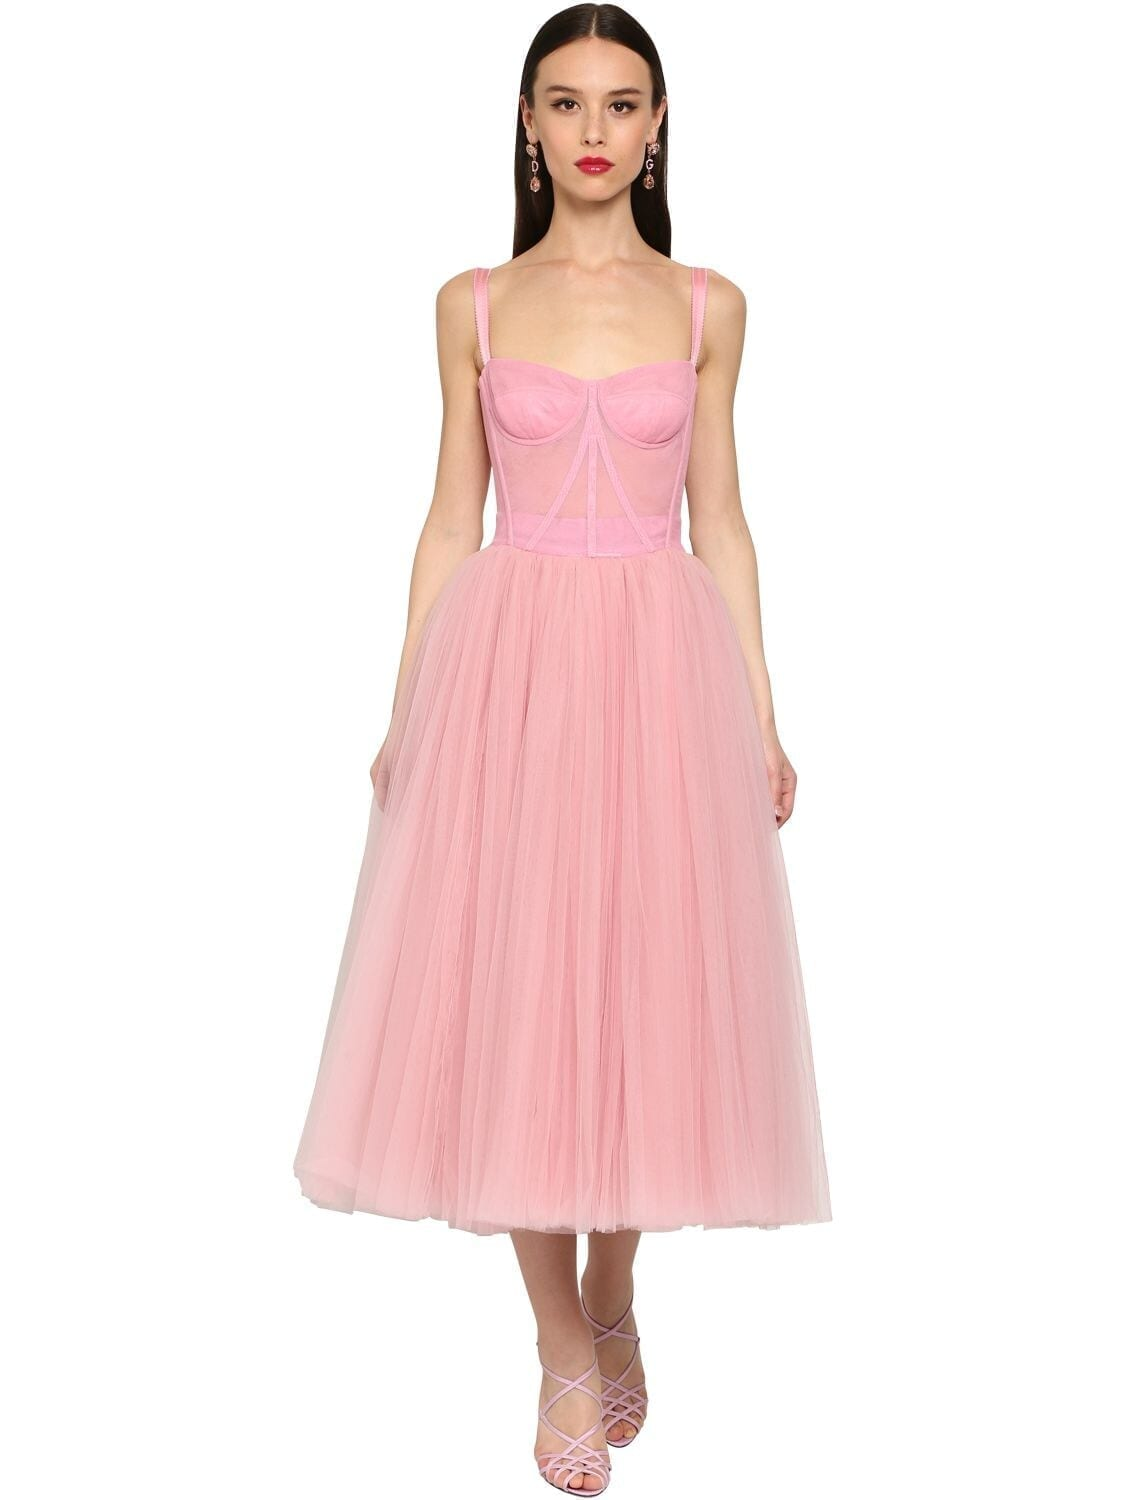 DOLCE & GABBANA Bustier Stretch Tulle Midi Dress